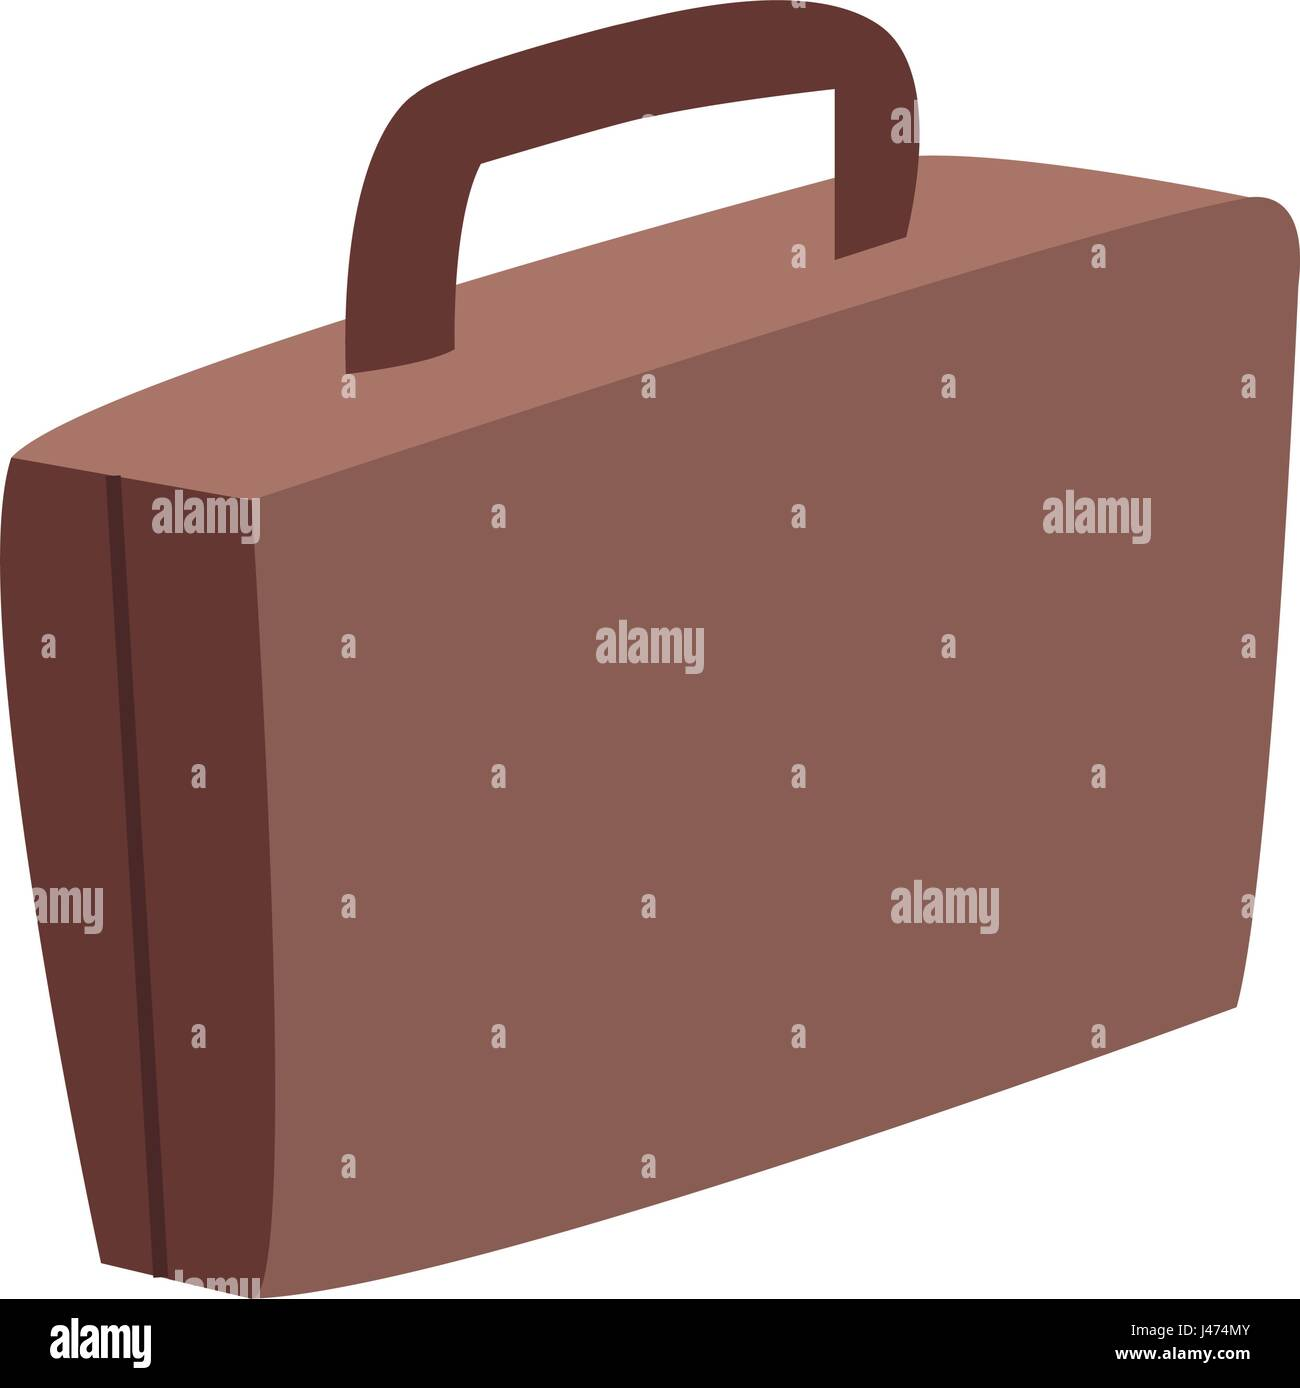 suitcase luggage travel equipment image - Stock Vector